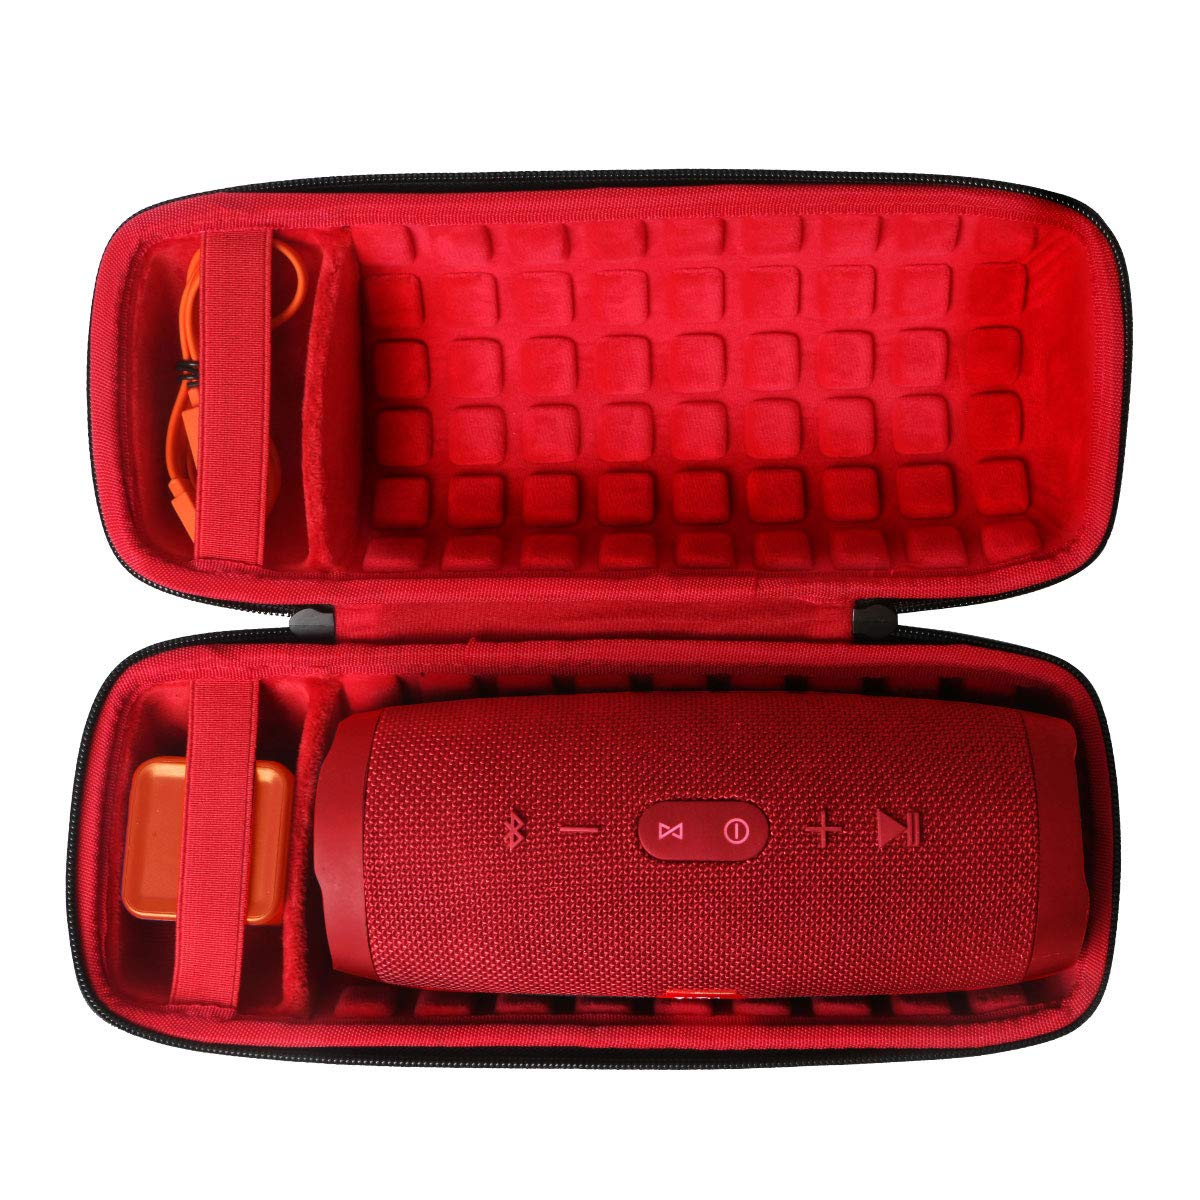 Outside Black and Inside Red co2crea Hard Travel Case for JBL Charge 4 Waterproof Bluetooth Speaker